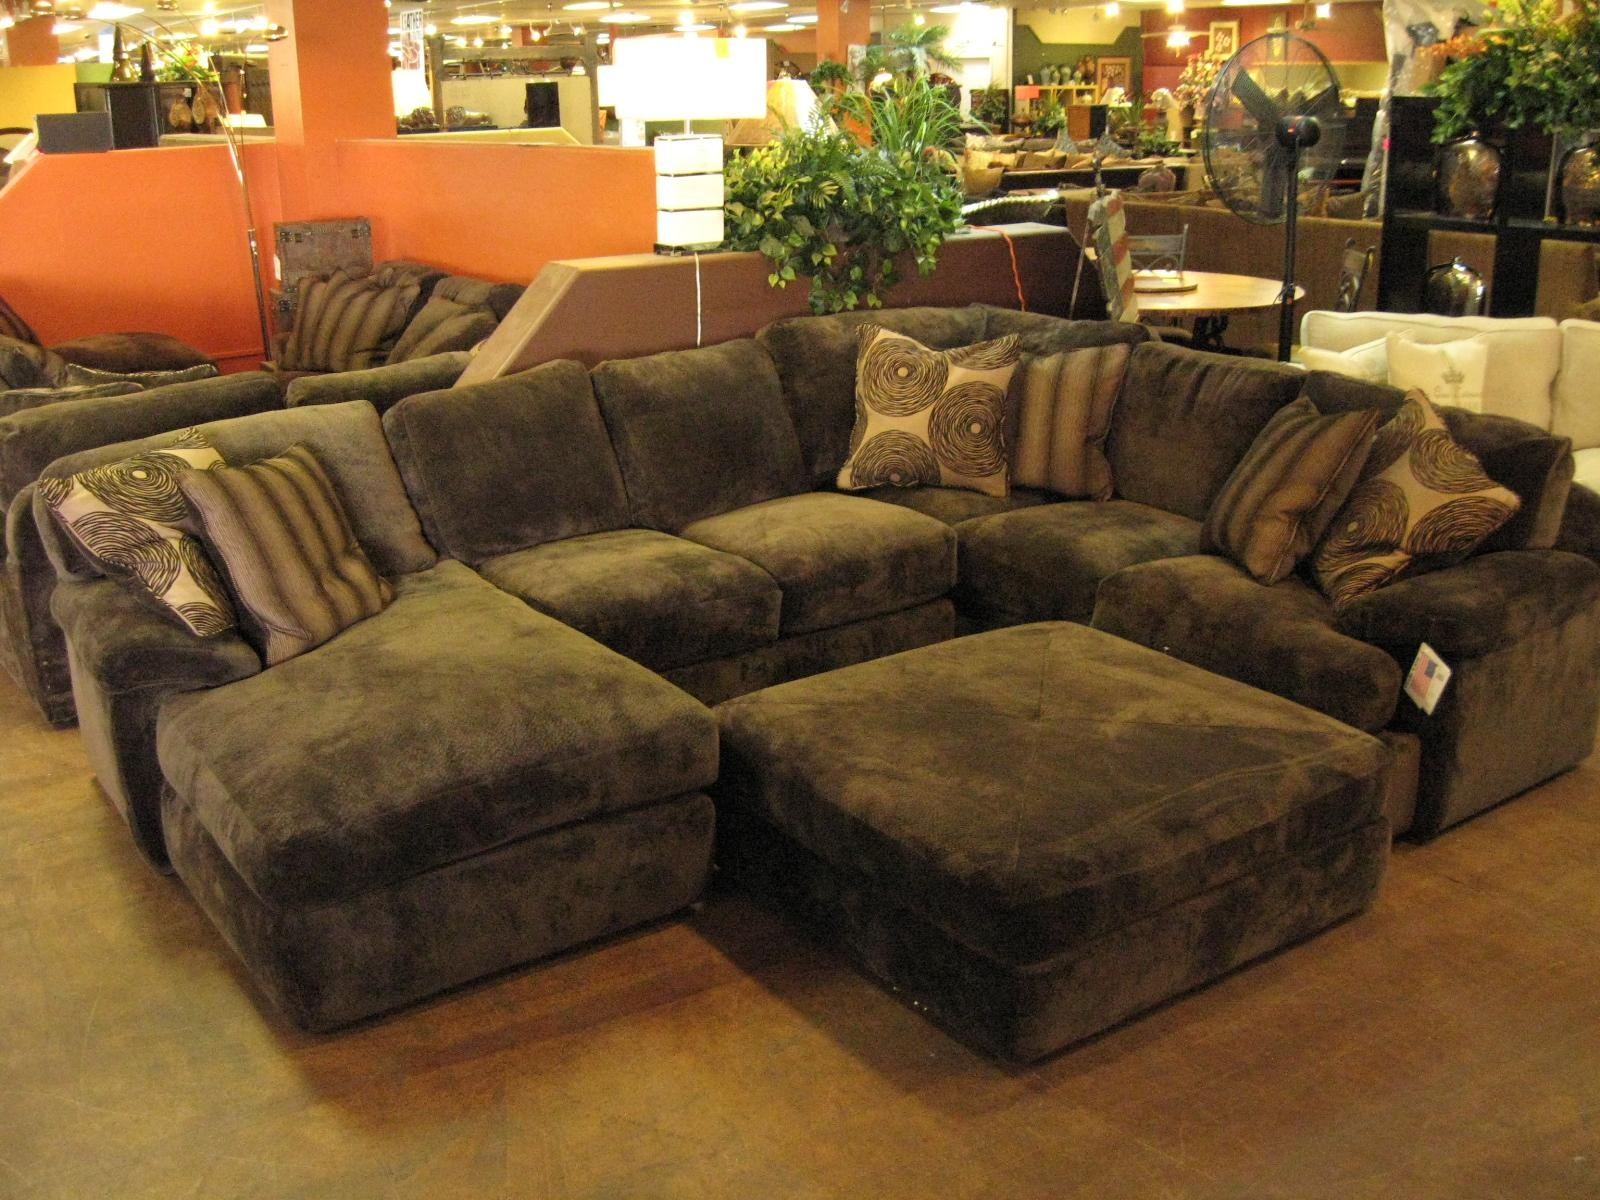 Sofas Center : Wonderful Cheap Rednal Sofa About Remodel Create With Down Filled Sofas And Sectionals (Image 15 of 15)